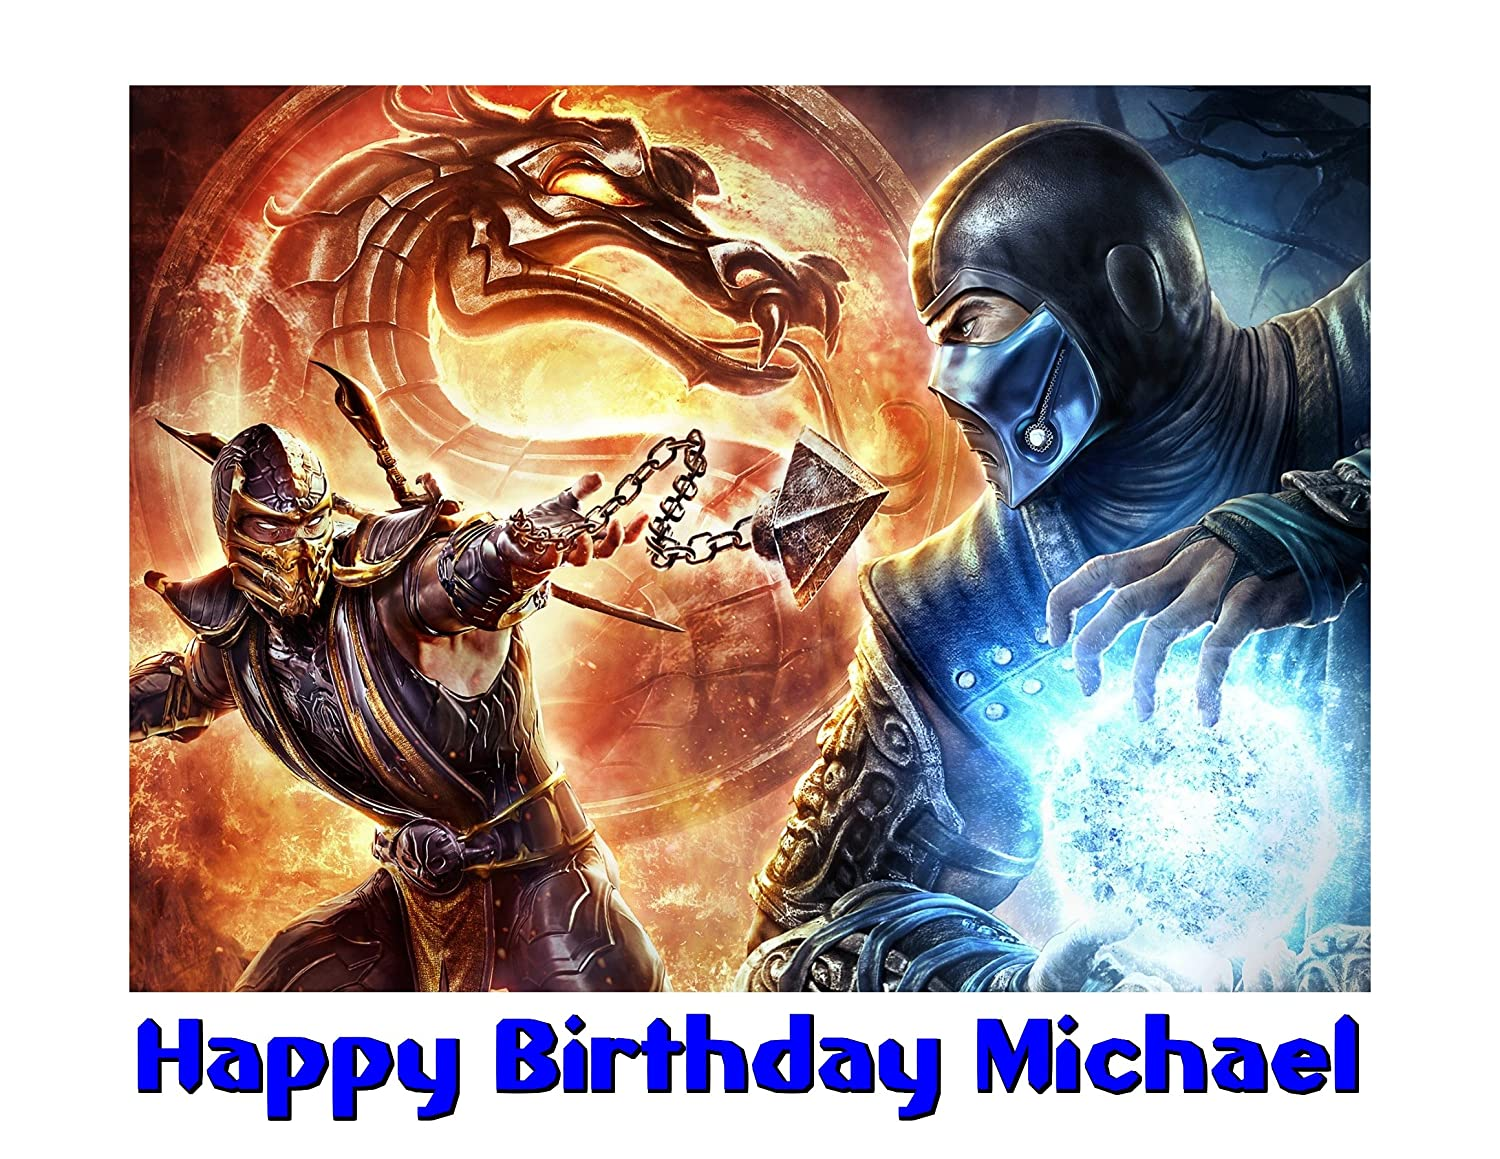 Amazon Mortal Kombat Sub Zero Scorpion Image Photo Cake Topper